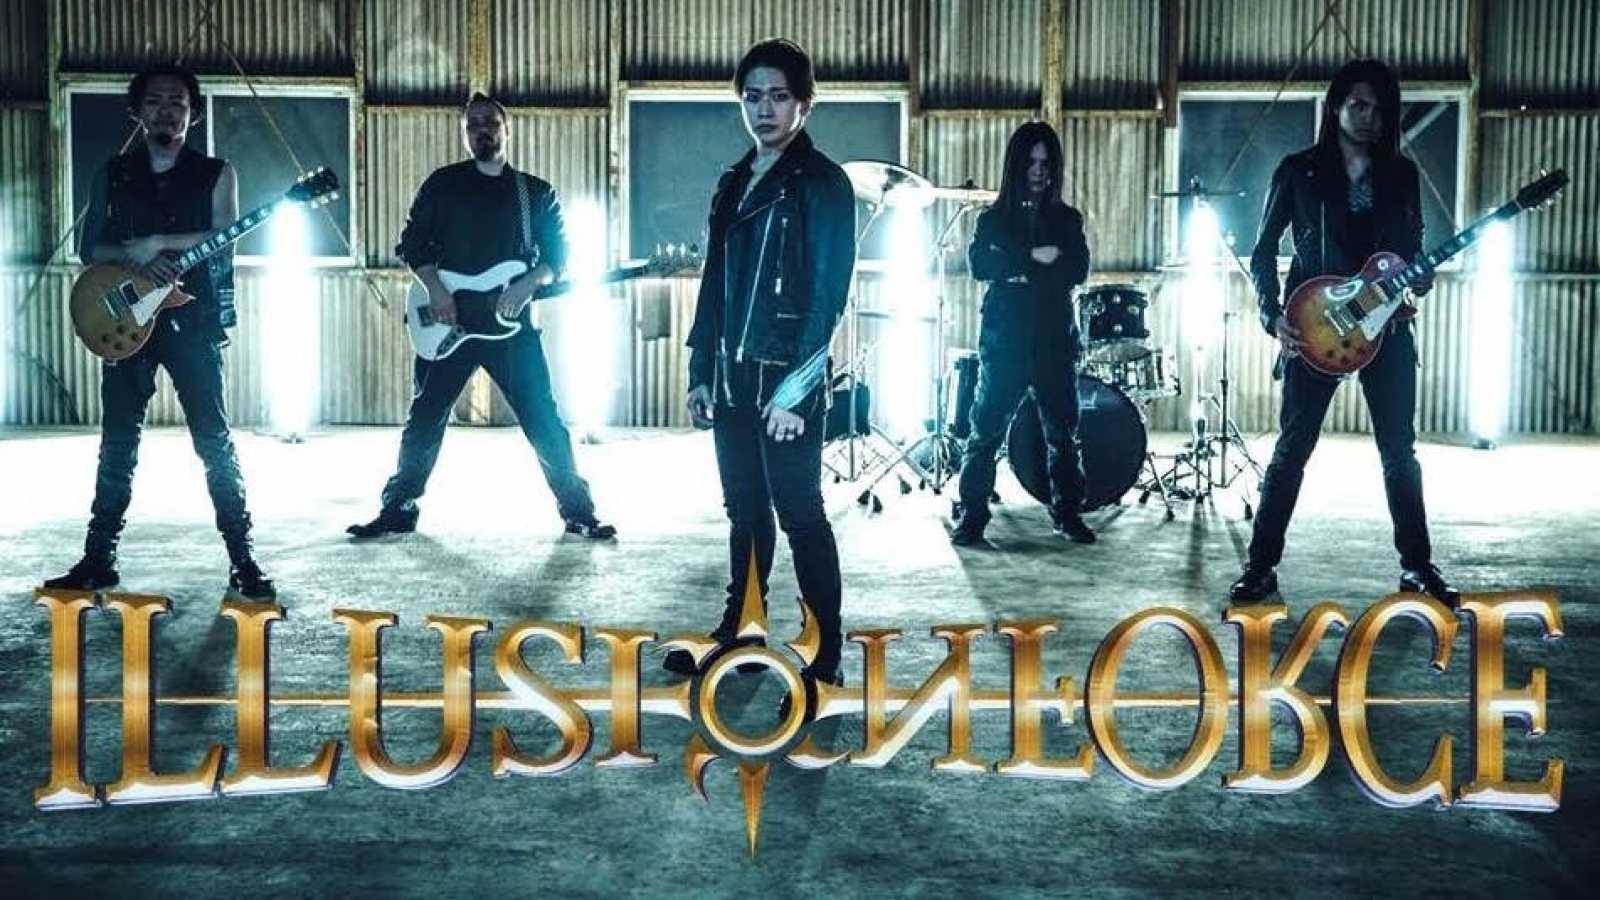 New Album from ILLUSION FORCE © ILLUSION FORCE All rights reserved.